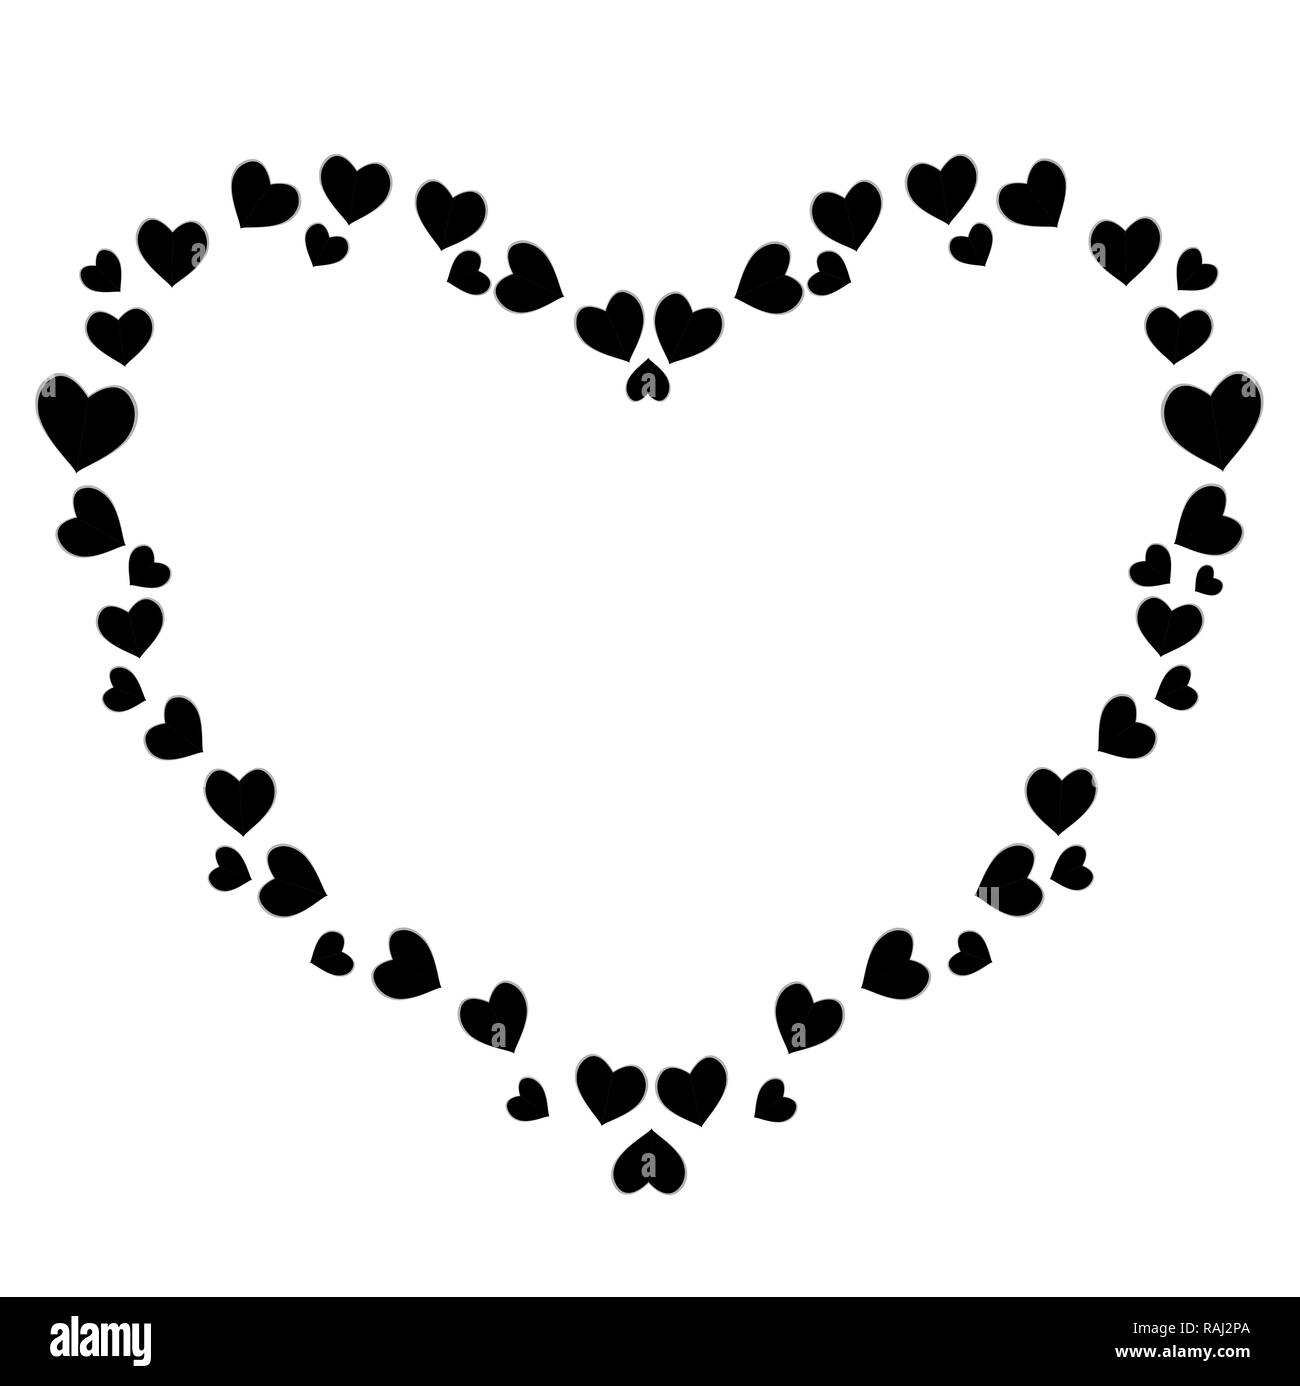 Cute Black Hearts Photo Frame For Valentines Love Romance